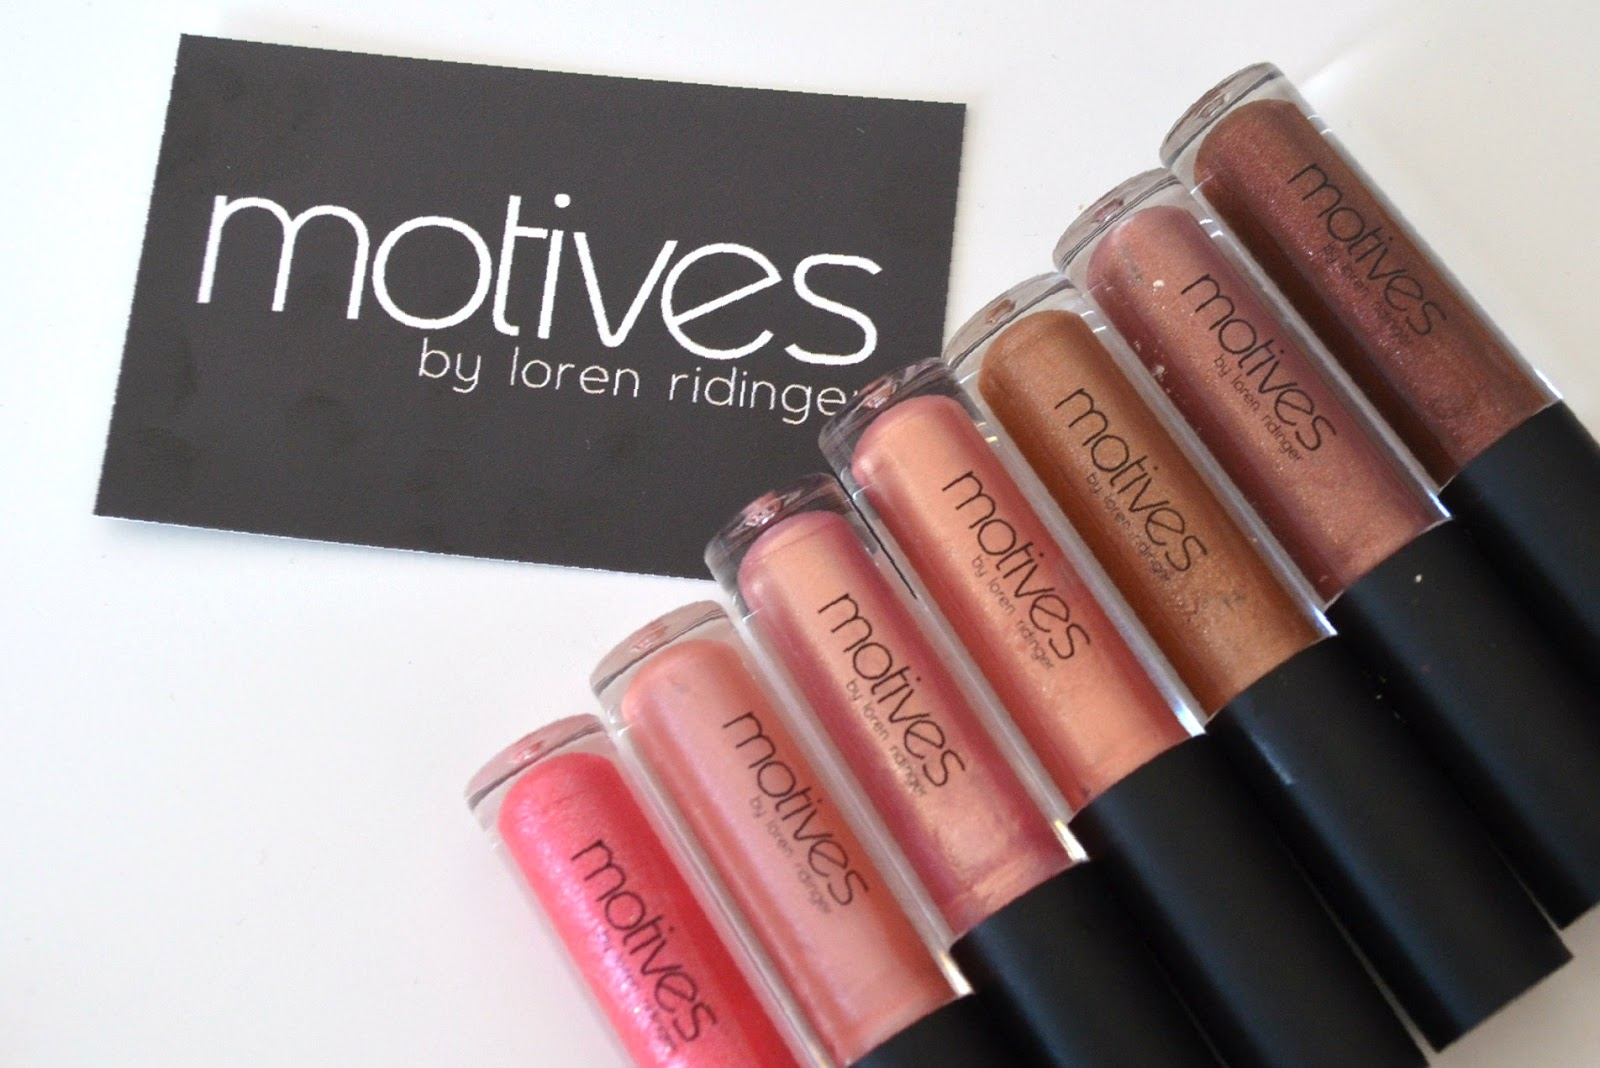 Mishmreow Beauty News Makeup Brand Motives Cosmetics